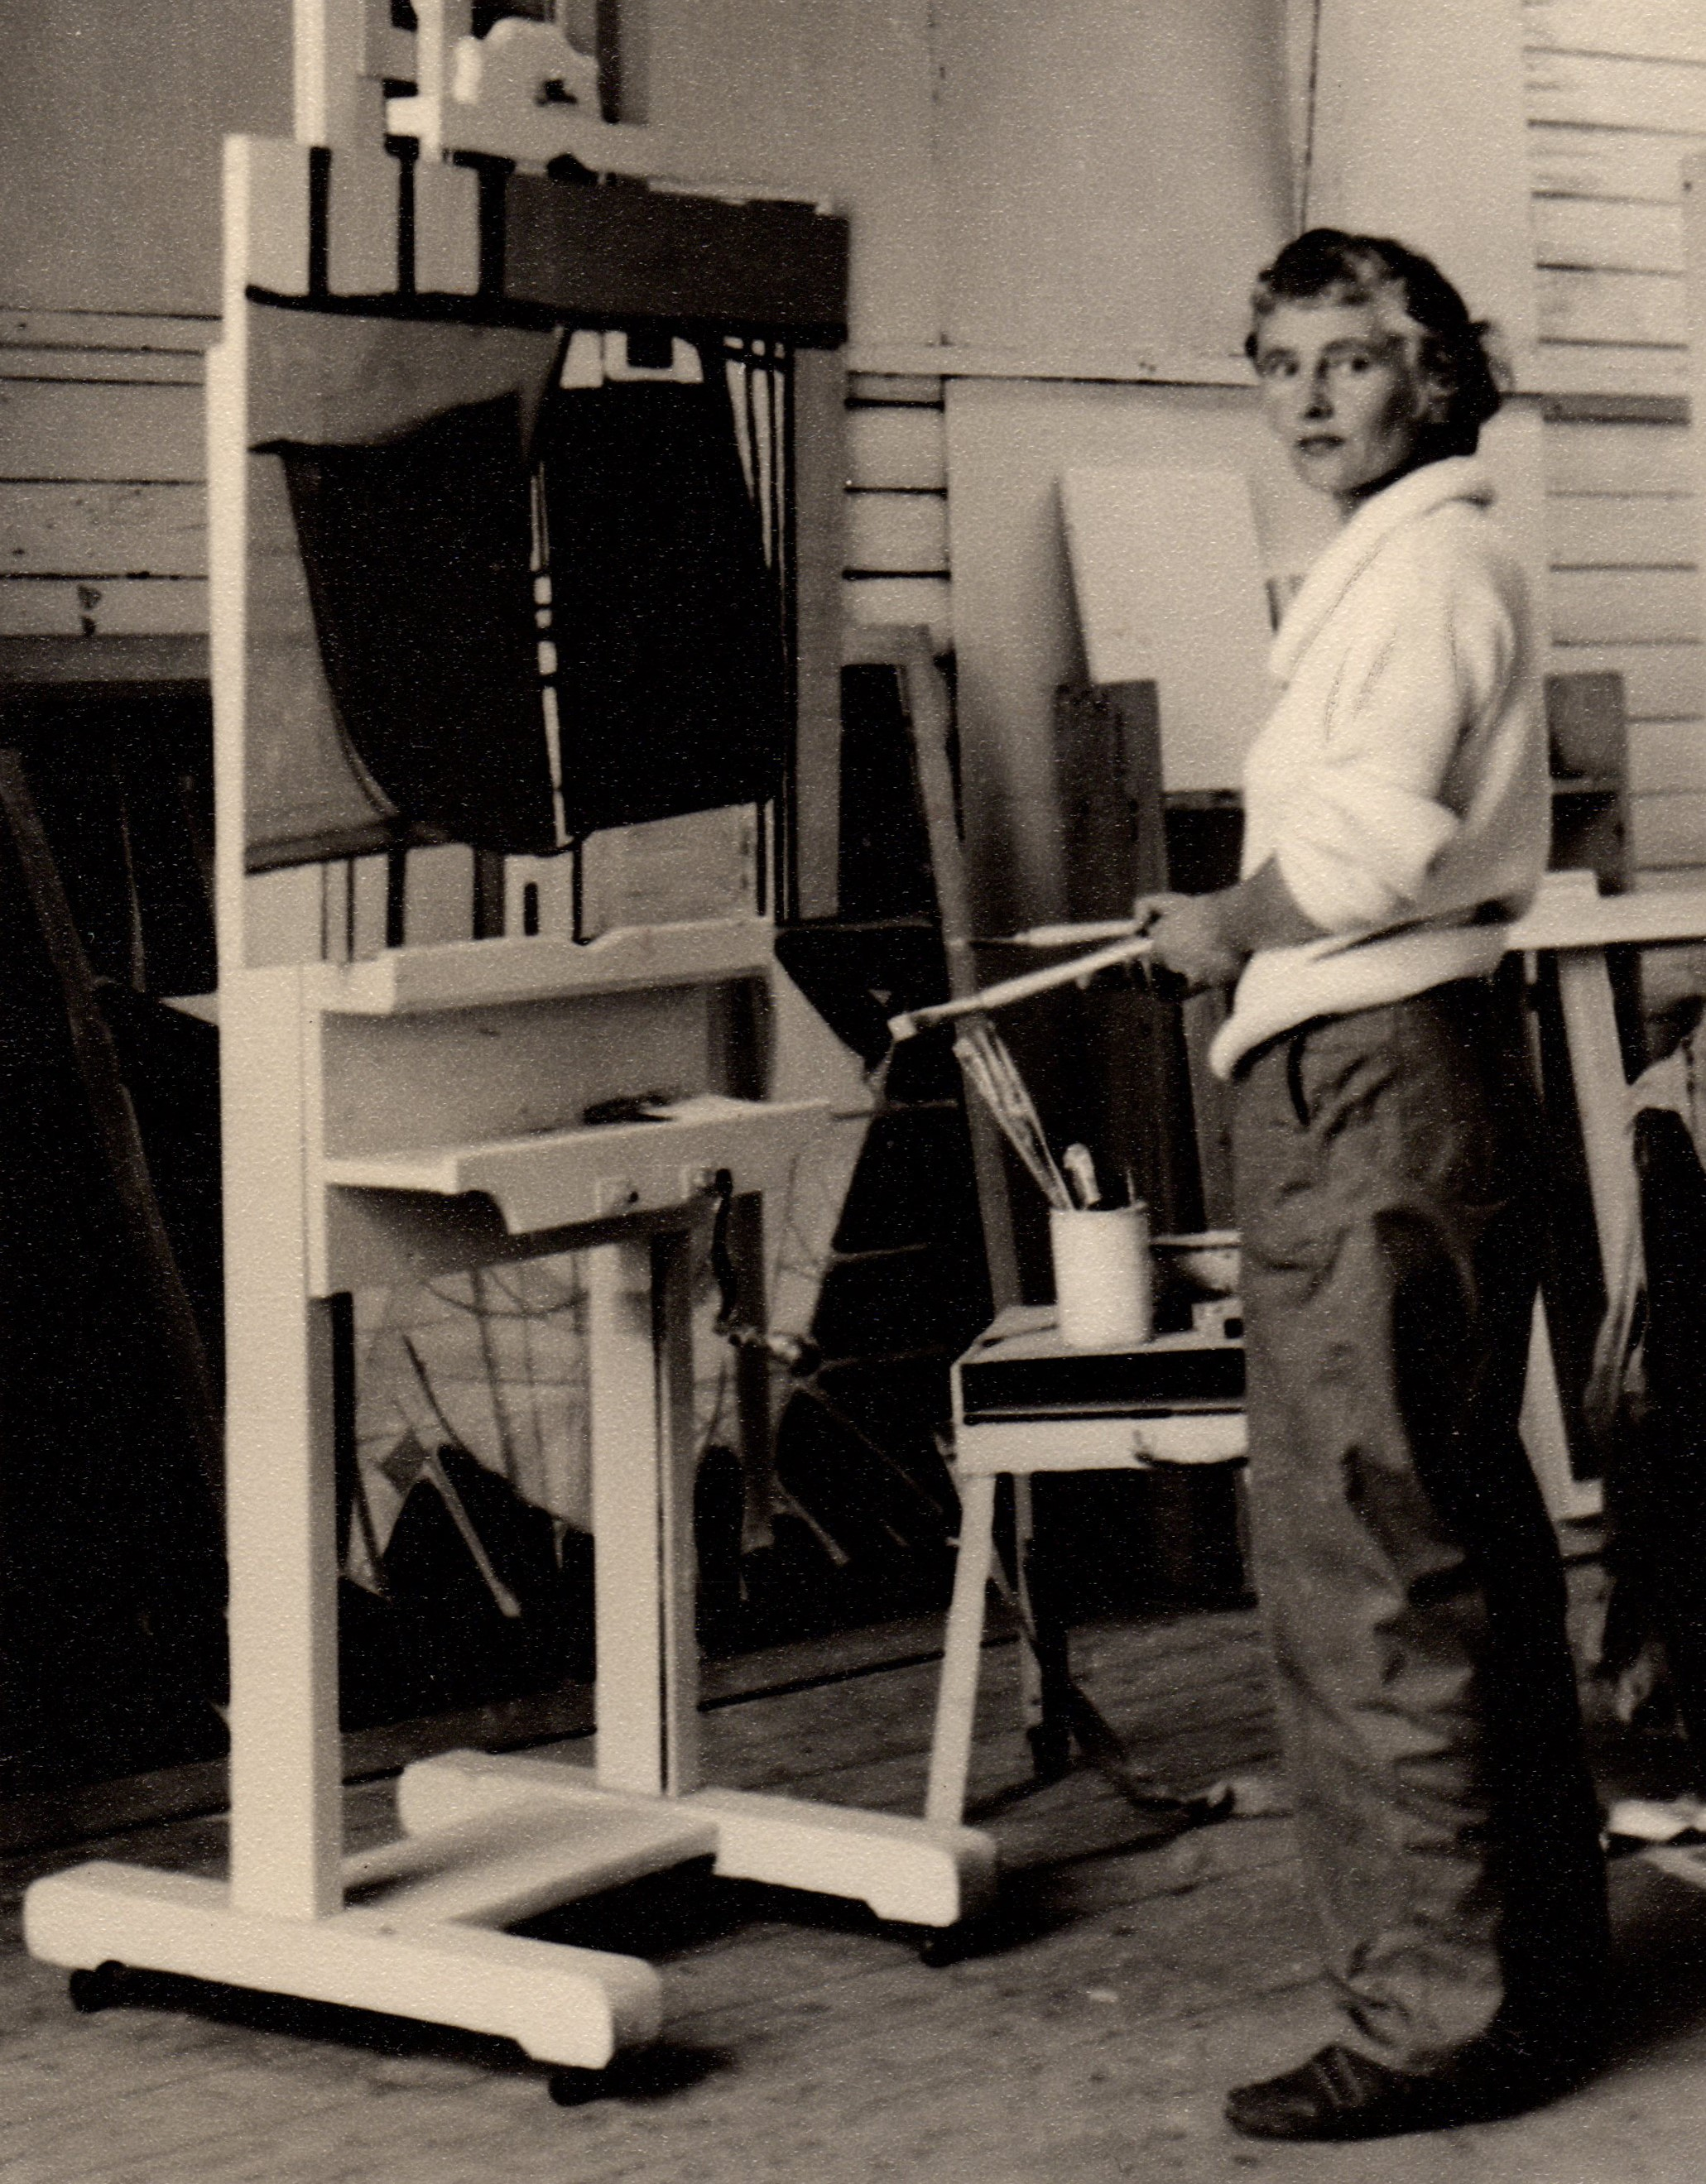 Wilhelmina Barns-Graham in Porthmeor Studios, St Ives, late 1950s (photographer unknown).